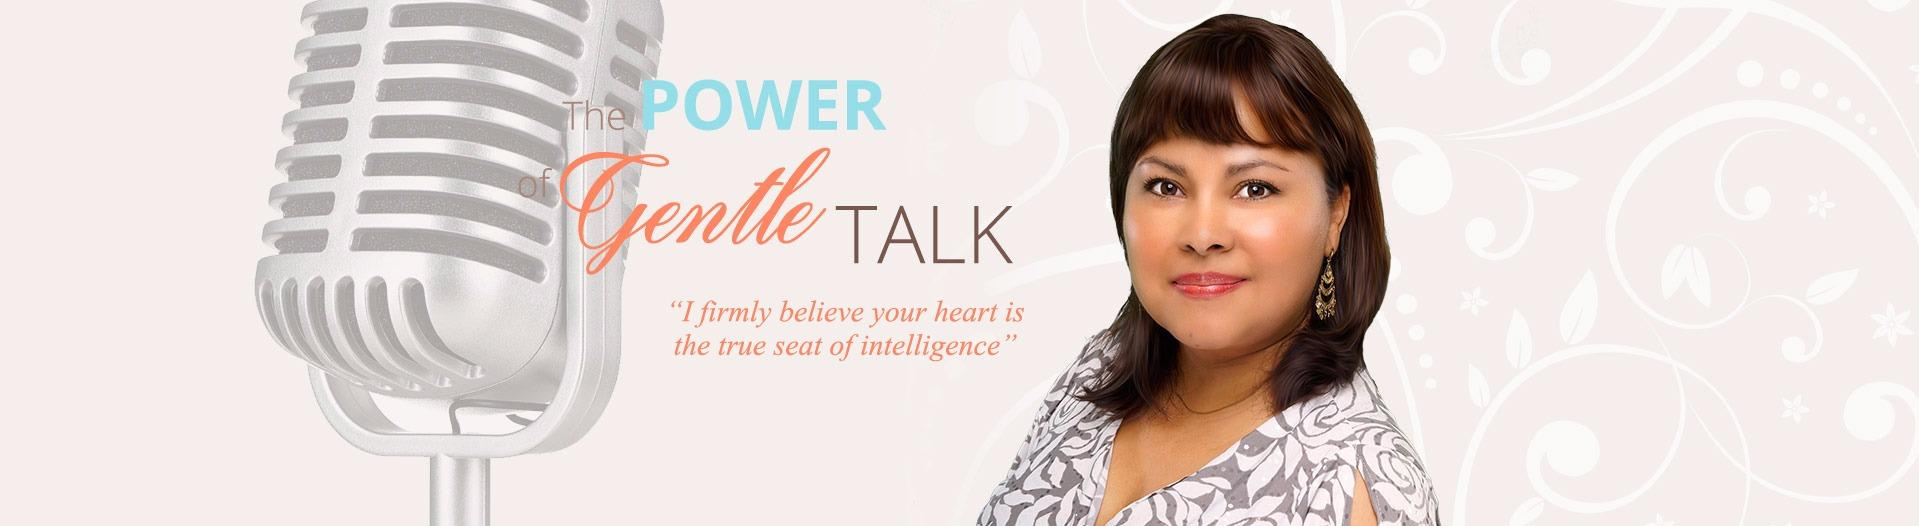 The Power of Gentle Talk image 1